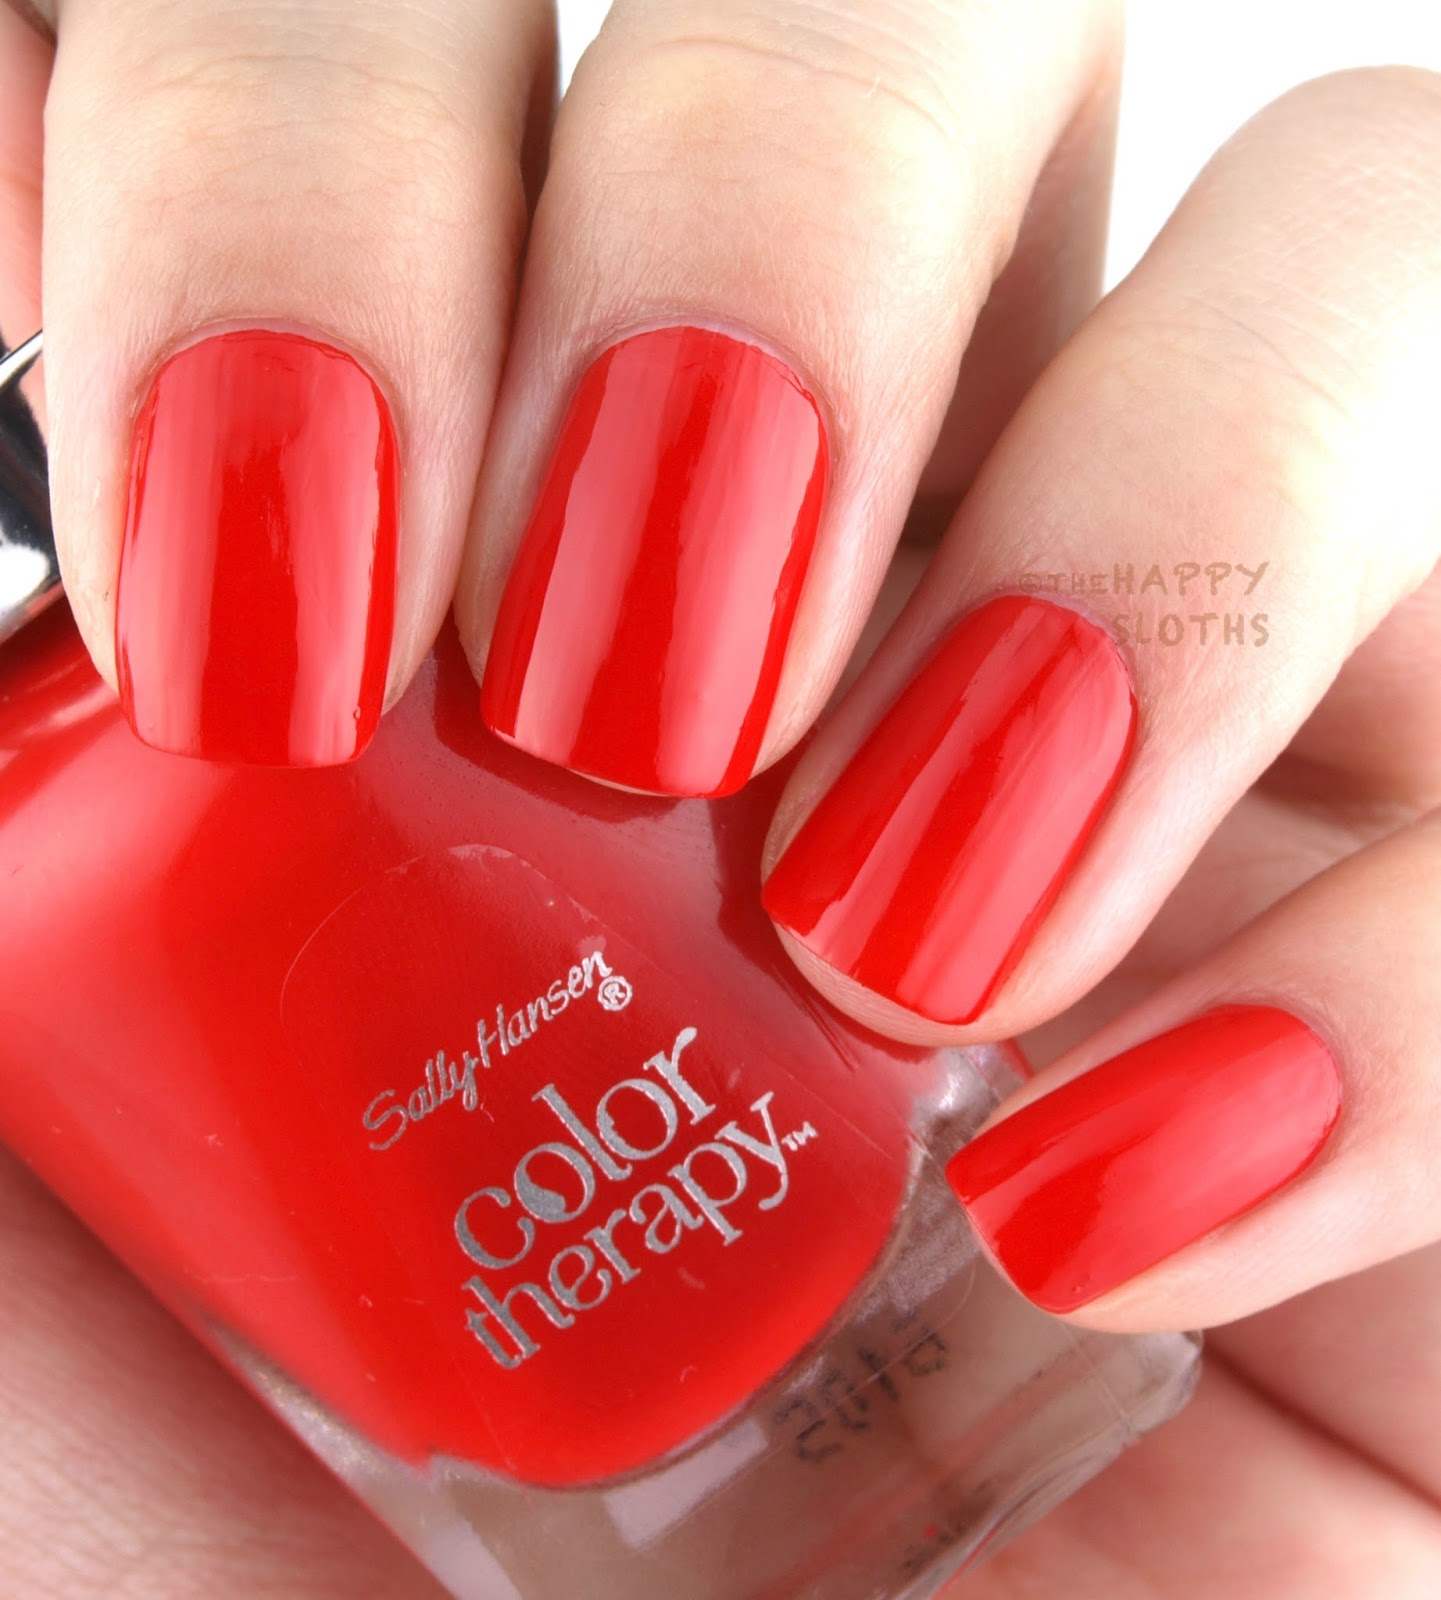 Colour therapy for high bp - One Of My Favorite Shades From This Collection Red Iance Is A Sizzling Red Orange The Formulation Is Top Notch It Is Ultra Pigmented And Creamy